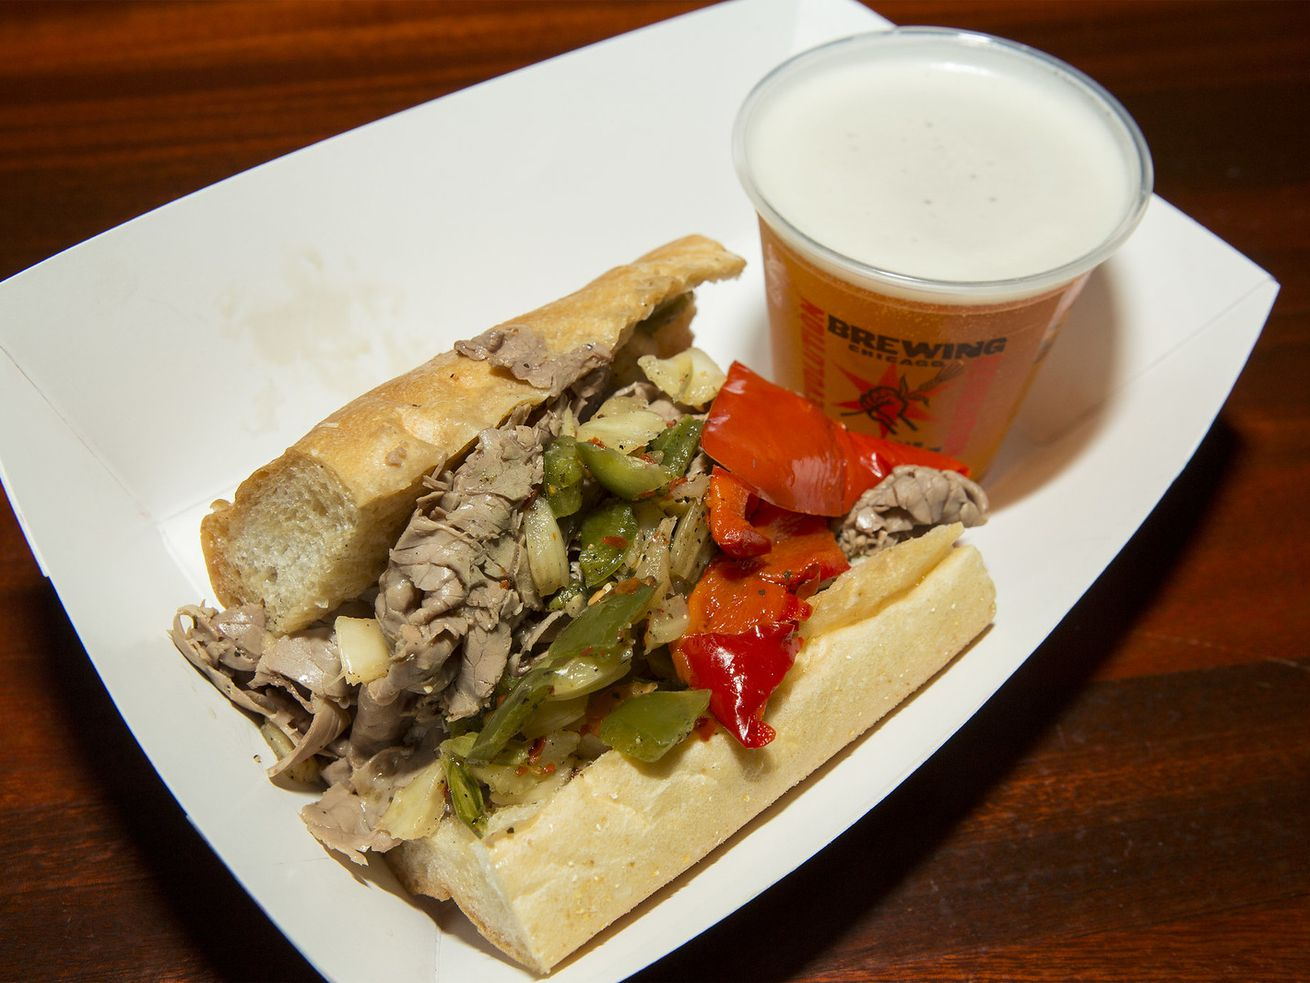 Italian beef sandwiches and beer are popular in Chicago.